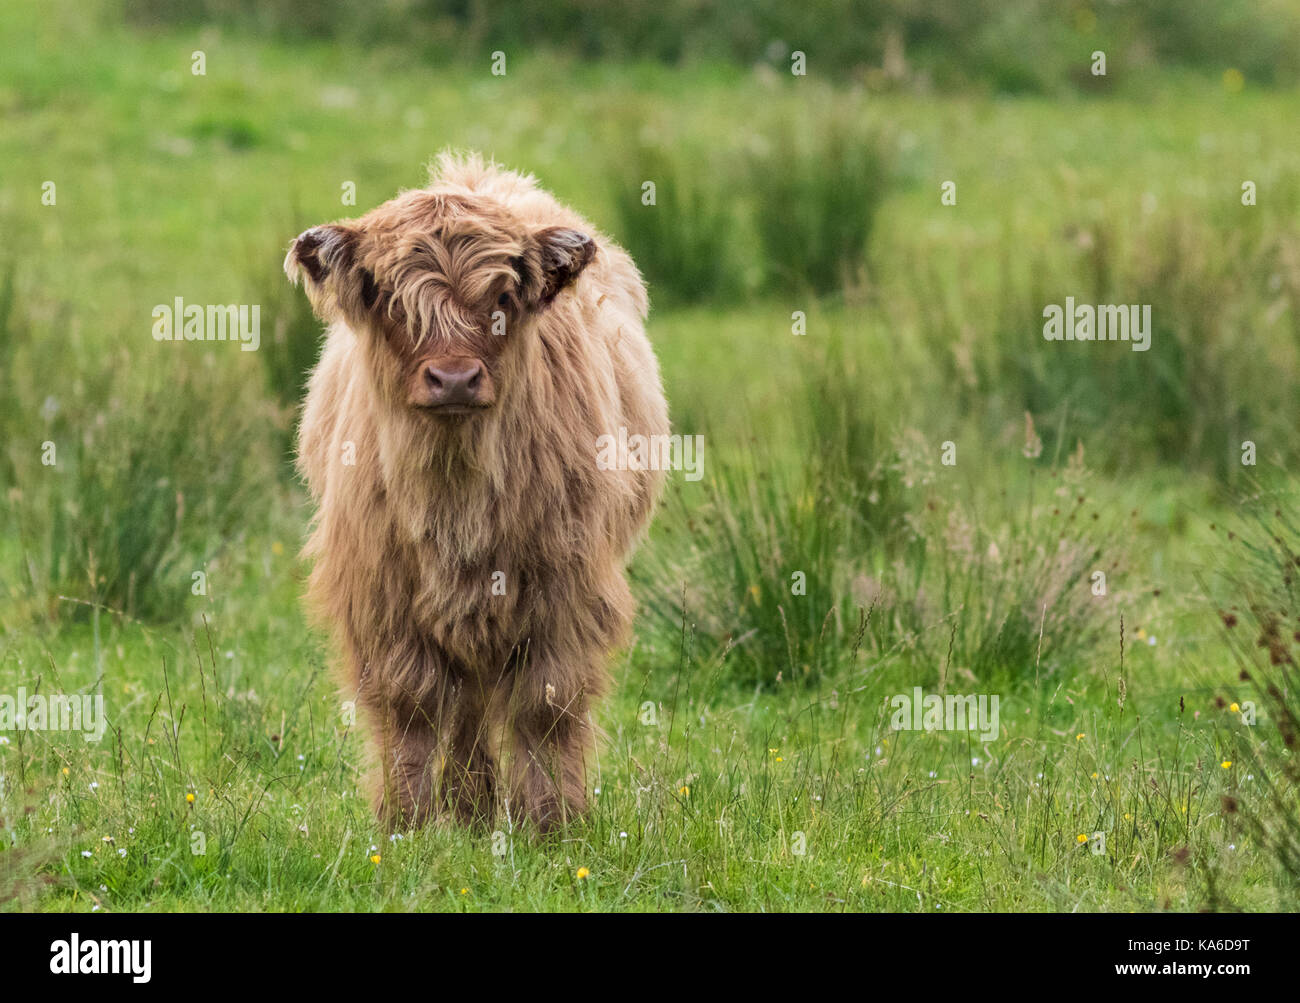 Highland cattle calf standing and looking in to the camera, Islay, Scotland Stock Photo